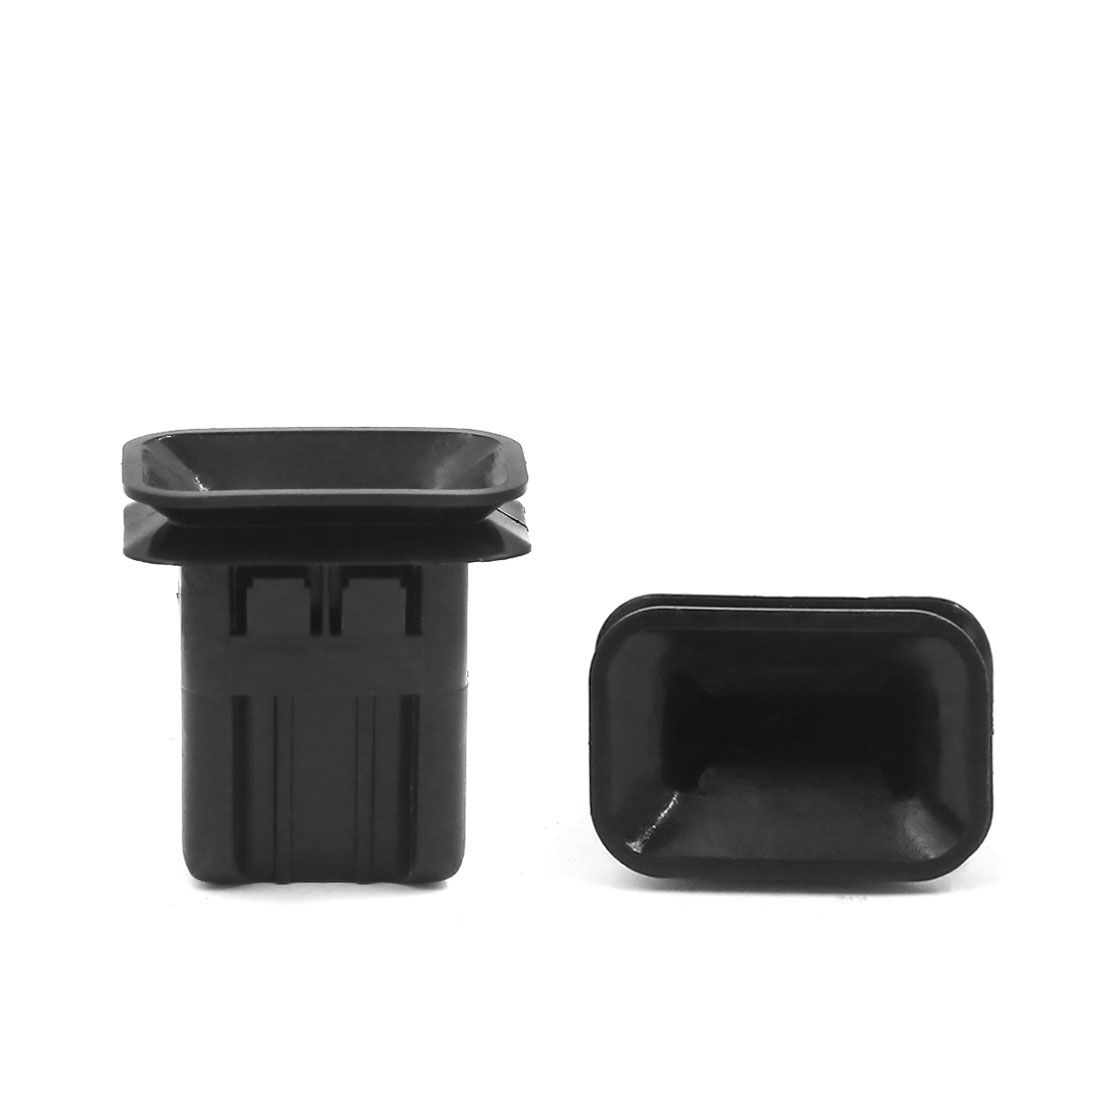 50Pcs 28x18mm Hole Size Black Plastic Retainer Seat Clip for Honda